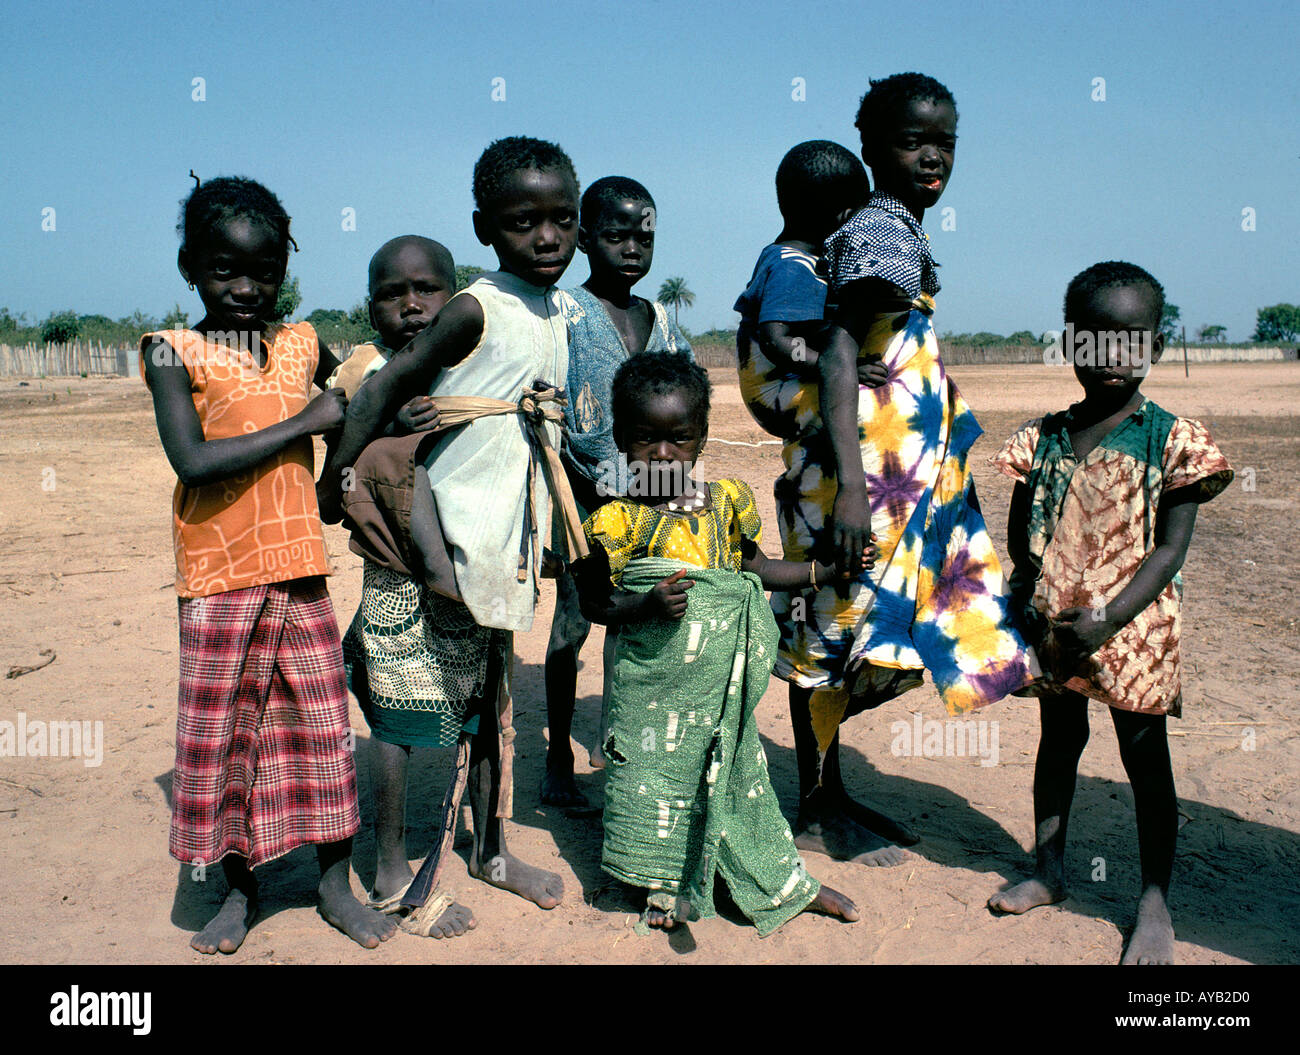 Poor Children in Gambia Afica Stock Photo, Royalty Free Image ...